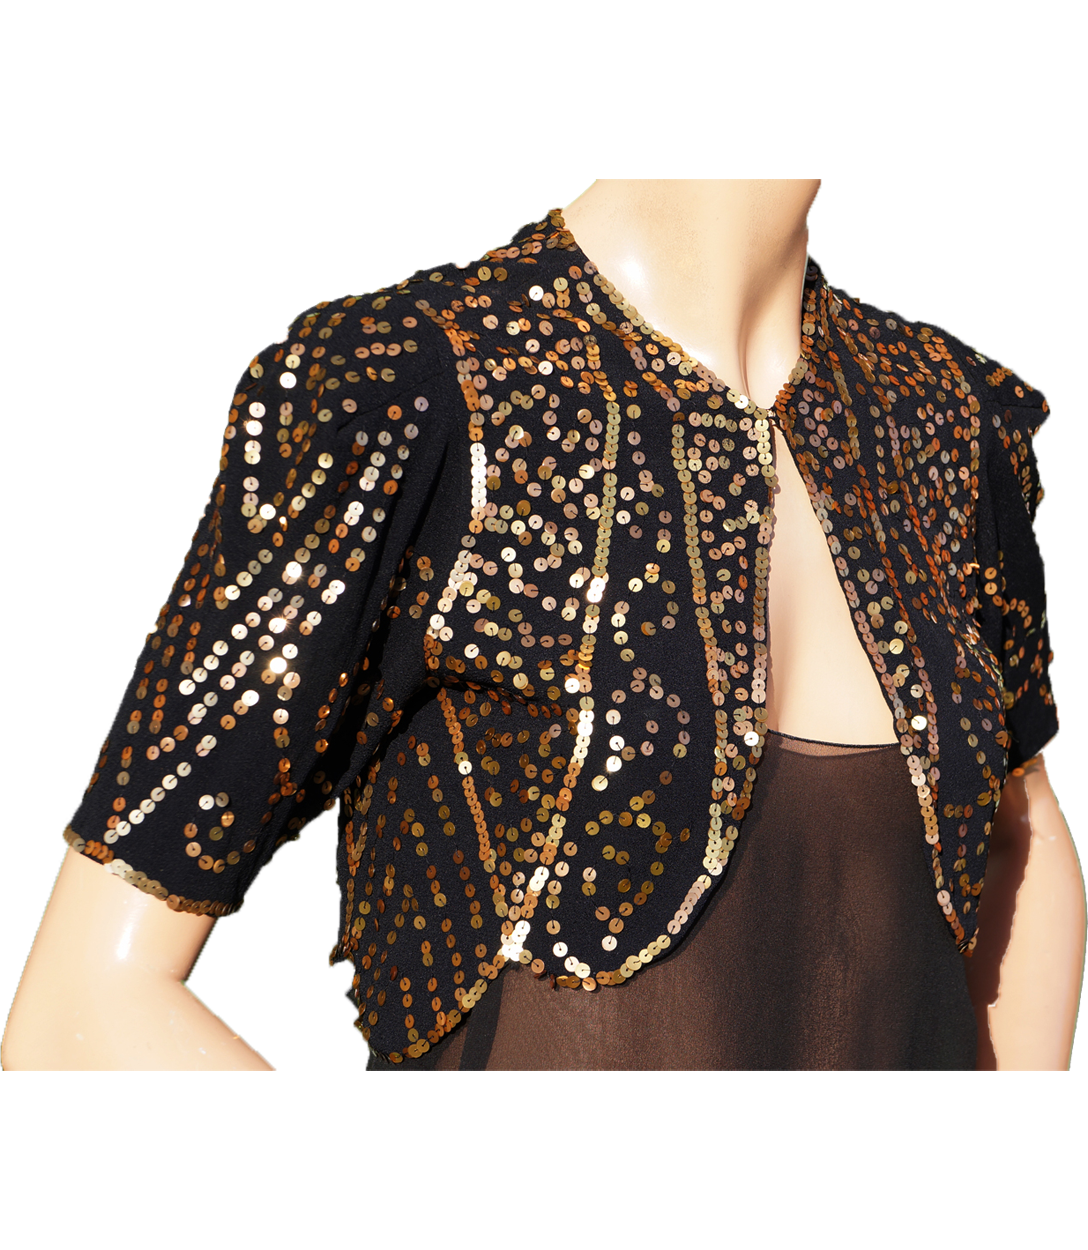 078b46c4 Vintage 30s Gold Sequin Bolero Jacket - 1930s Evening Sequined Black S